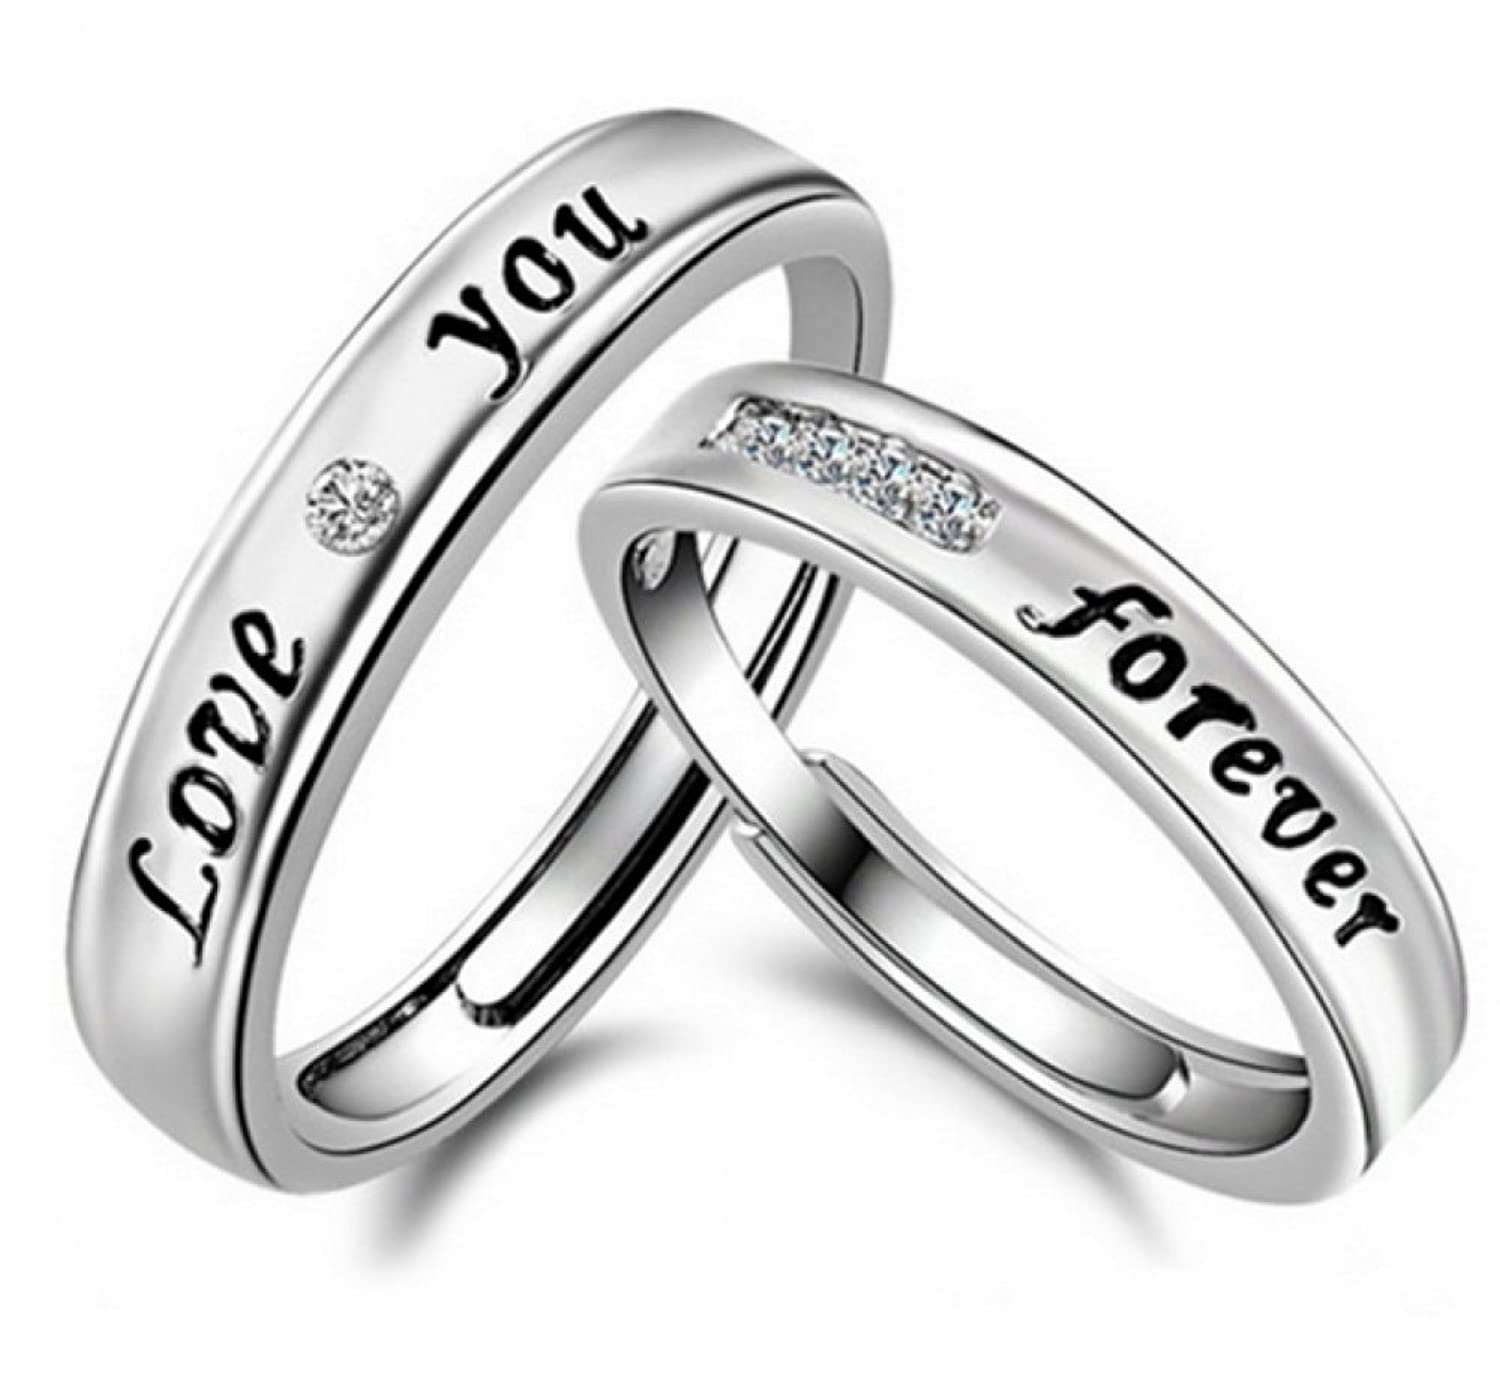 matching wedding and couple rings engagement titanium ring steel lovely bands hers promise his p